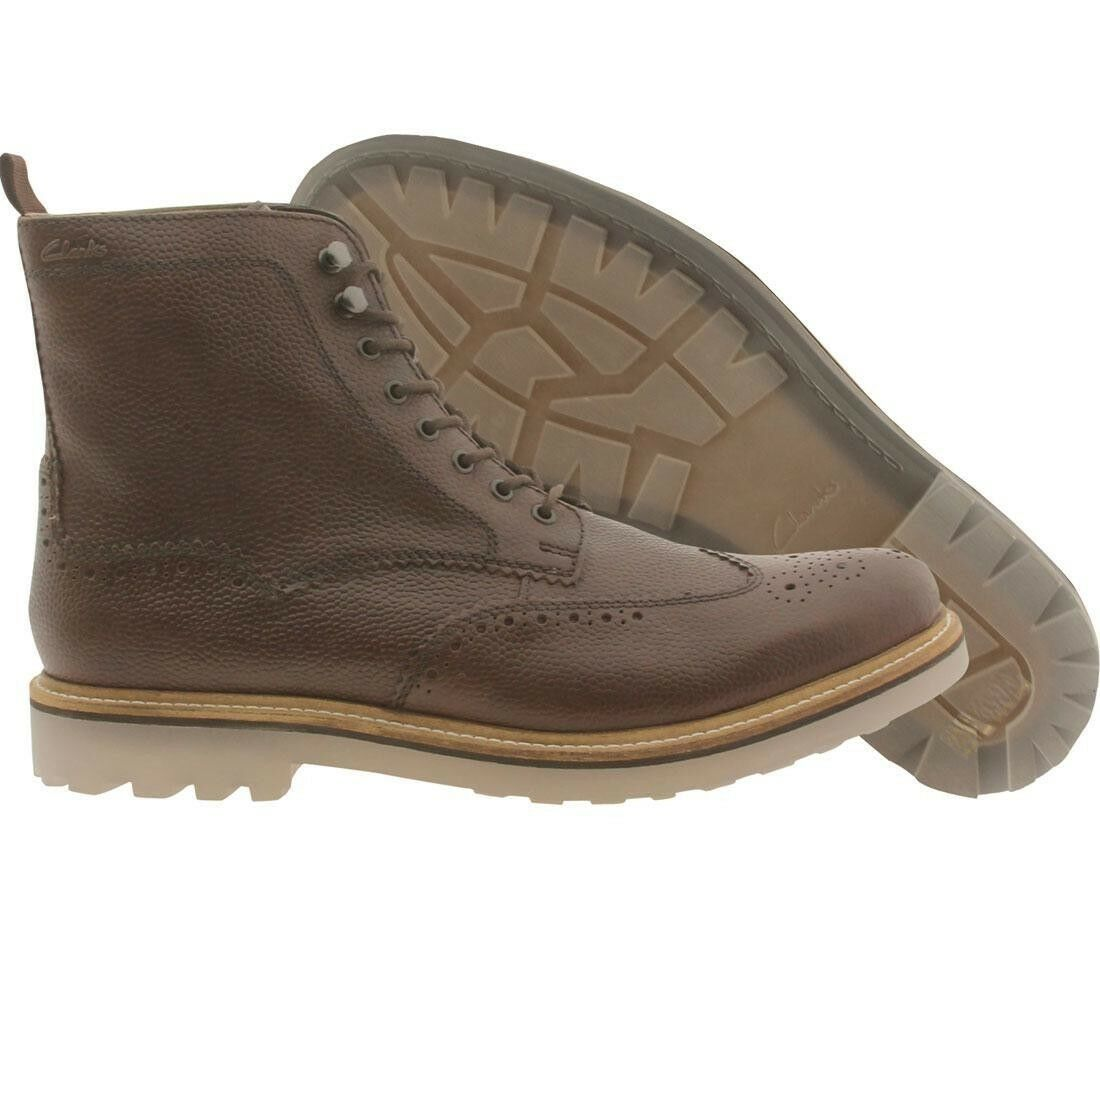 139.99 Clarks Uomo Monmart Rise (brown / brown inte) 2993